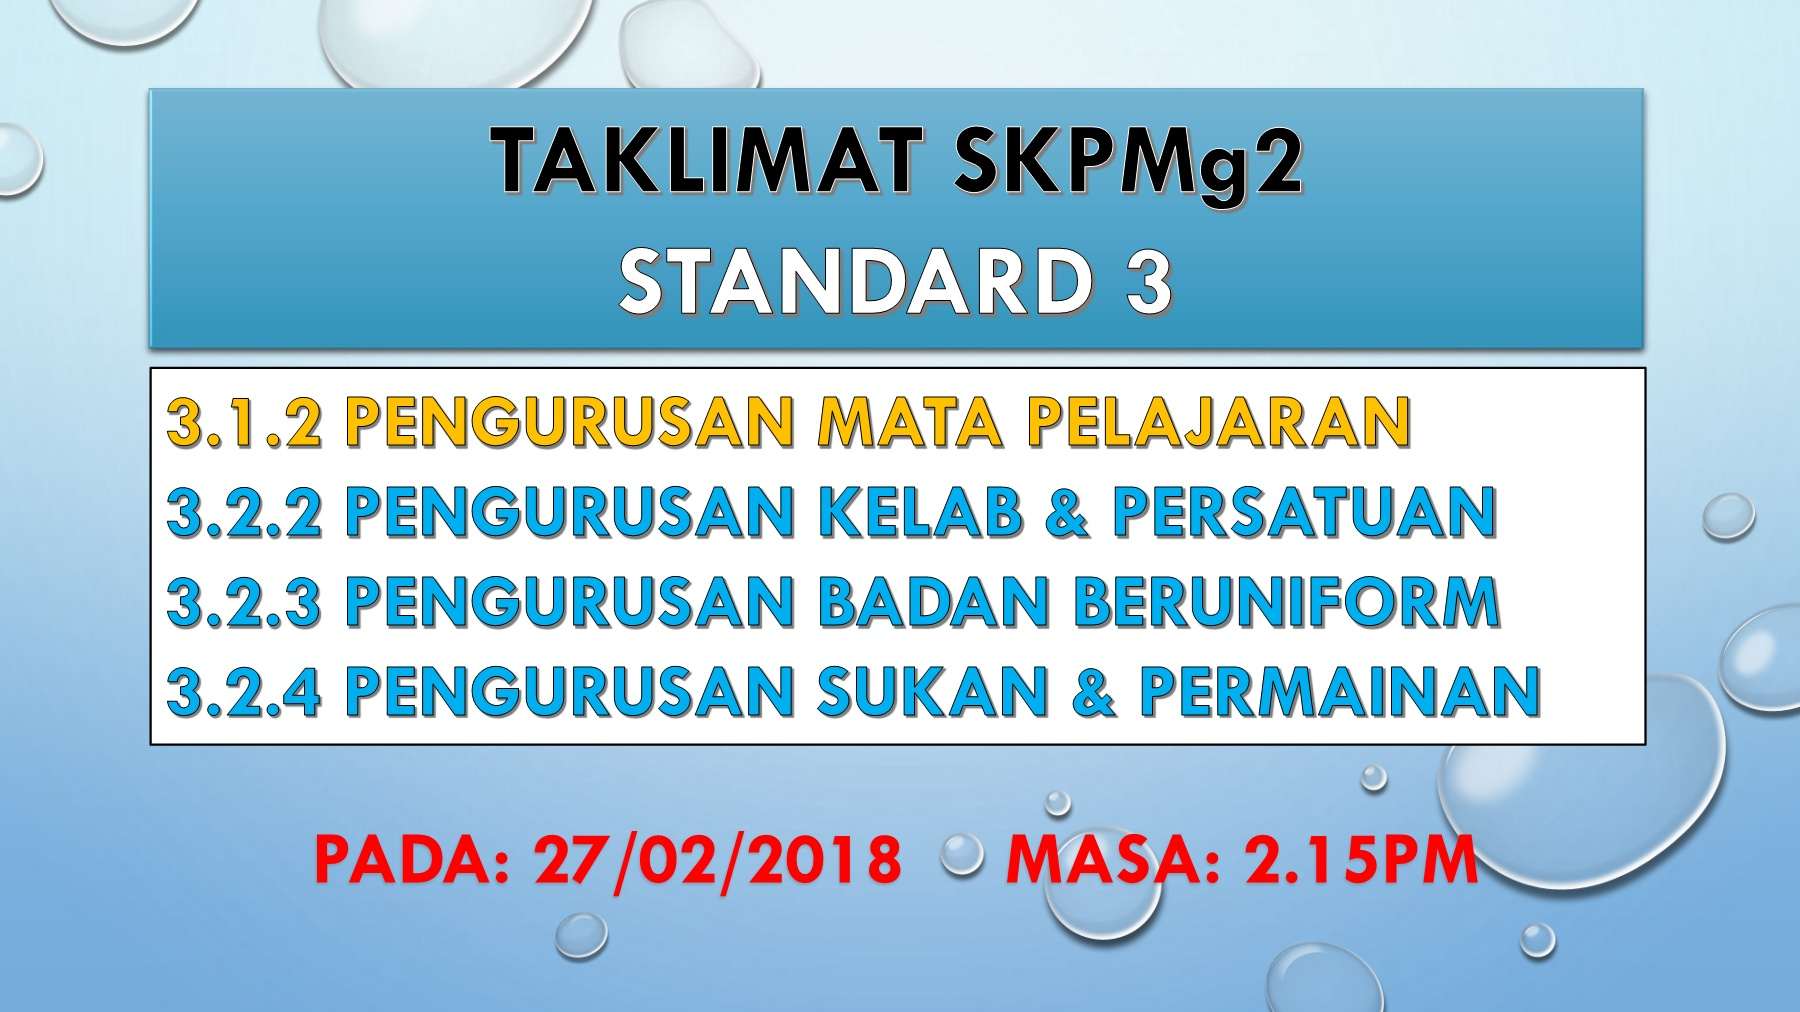 Taklimat Skpmg2 Standard 3 Pages 1 20 Text Version Anyflip